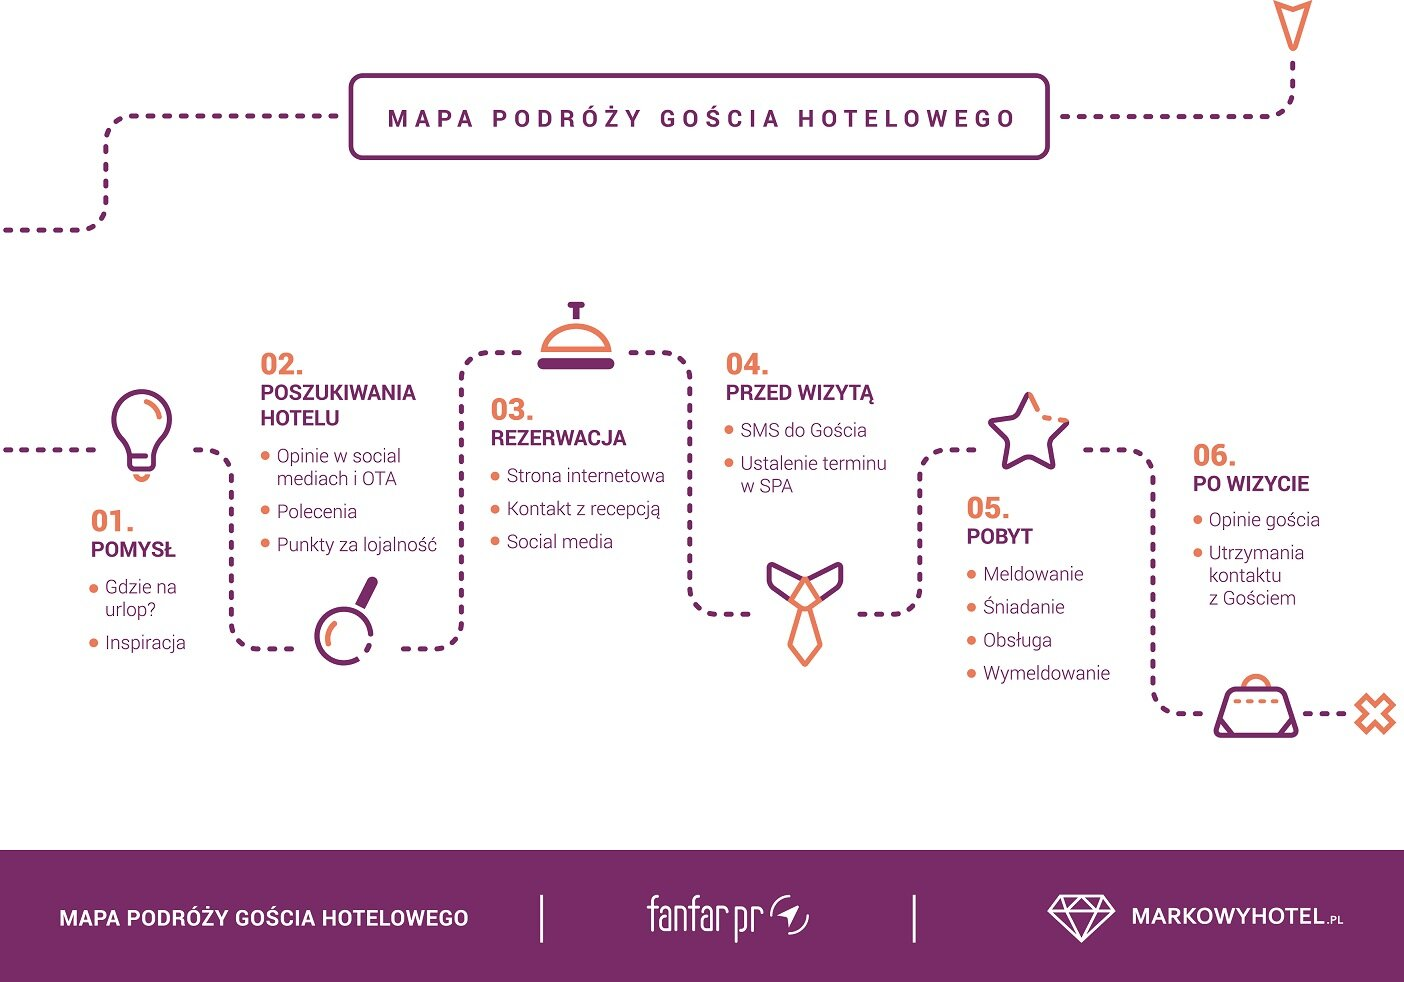 mapa podróży klienta gościa hotelowego customer journey map